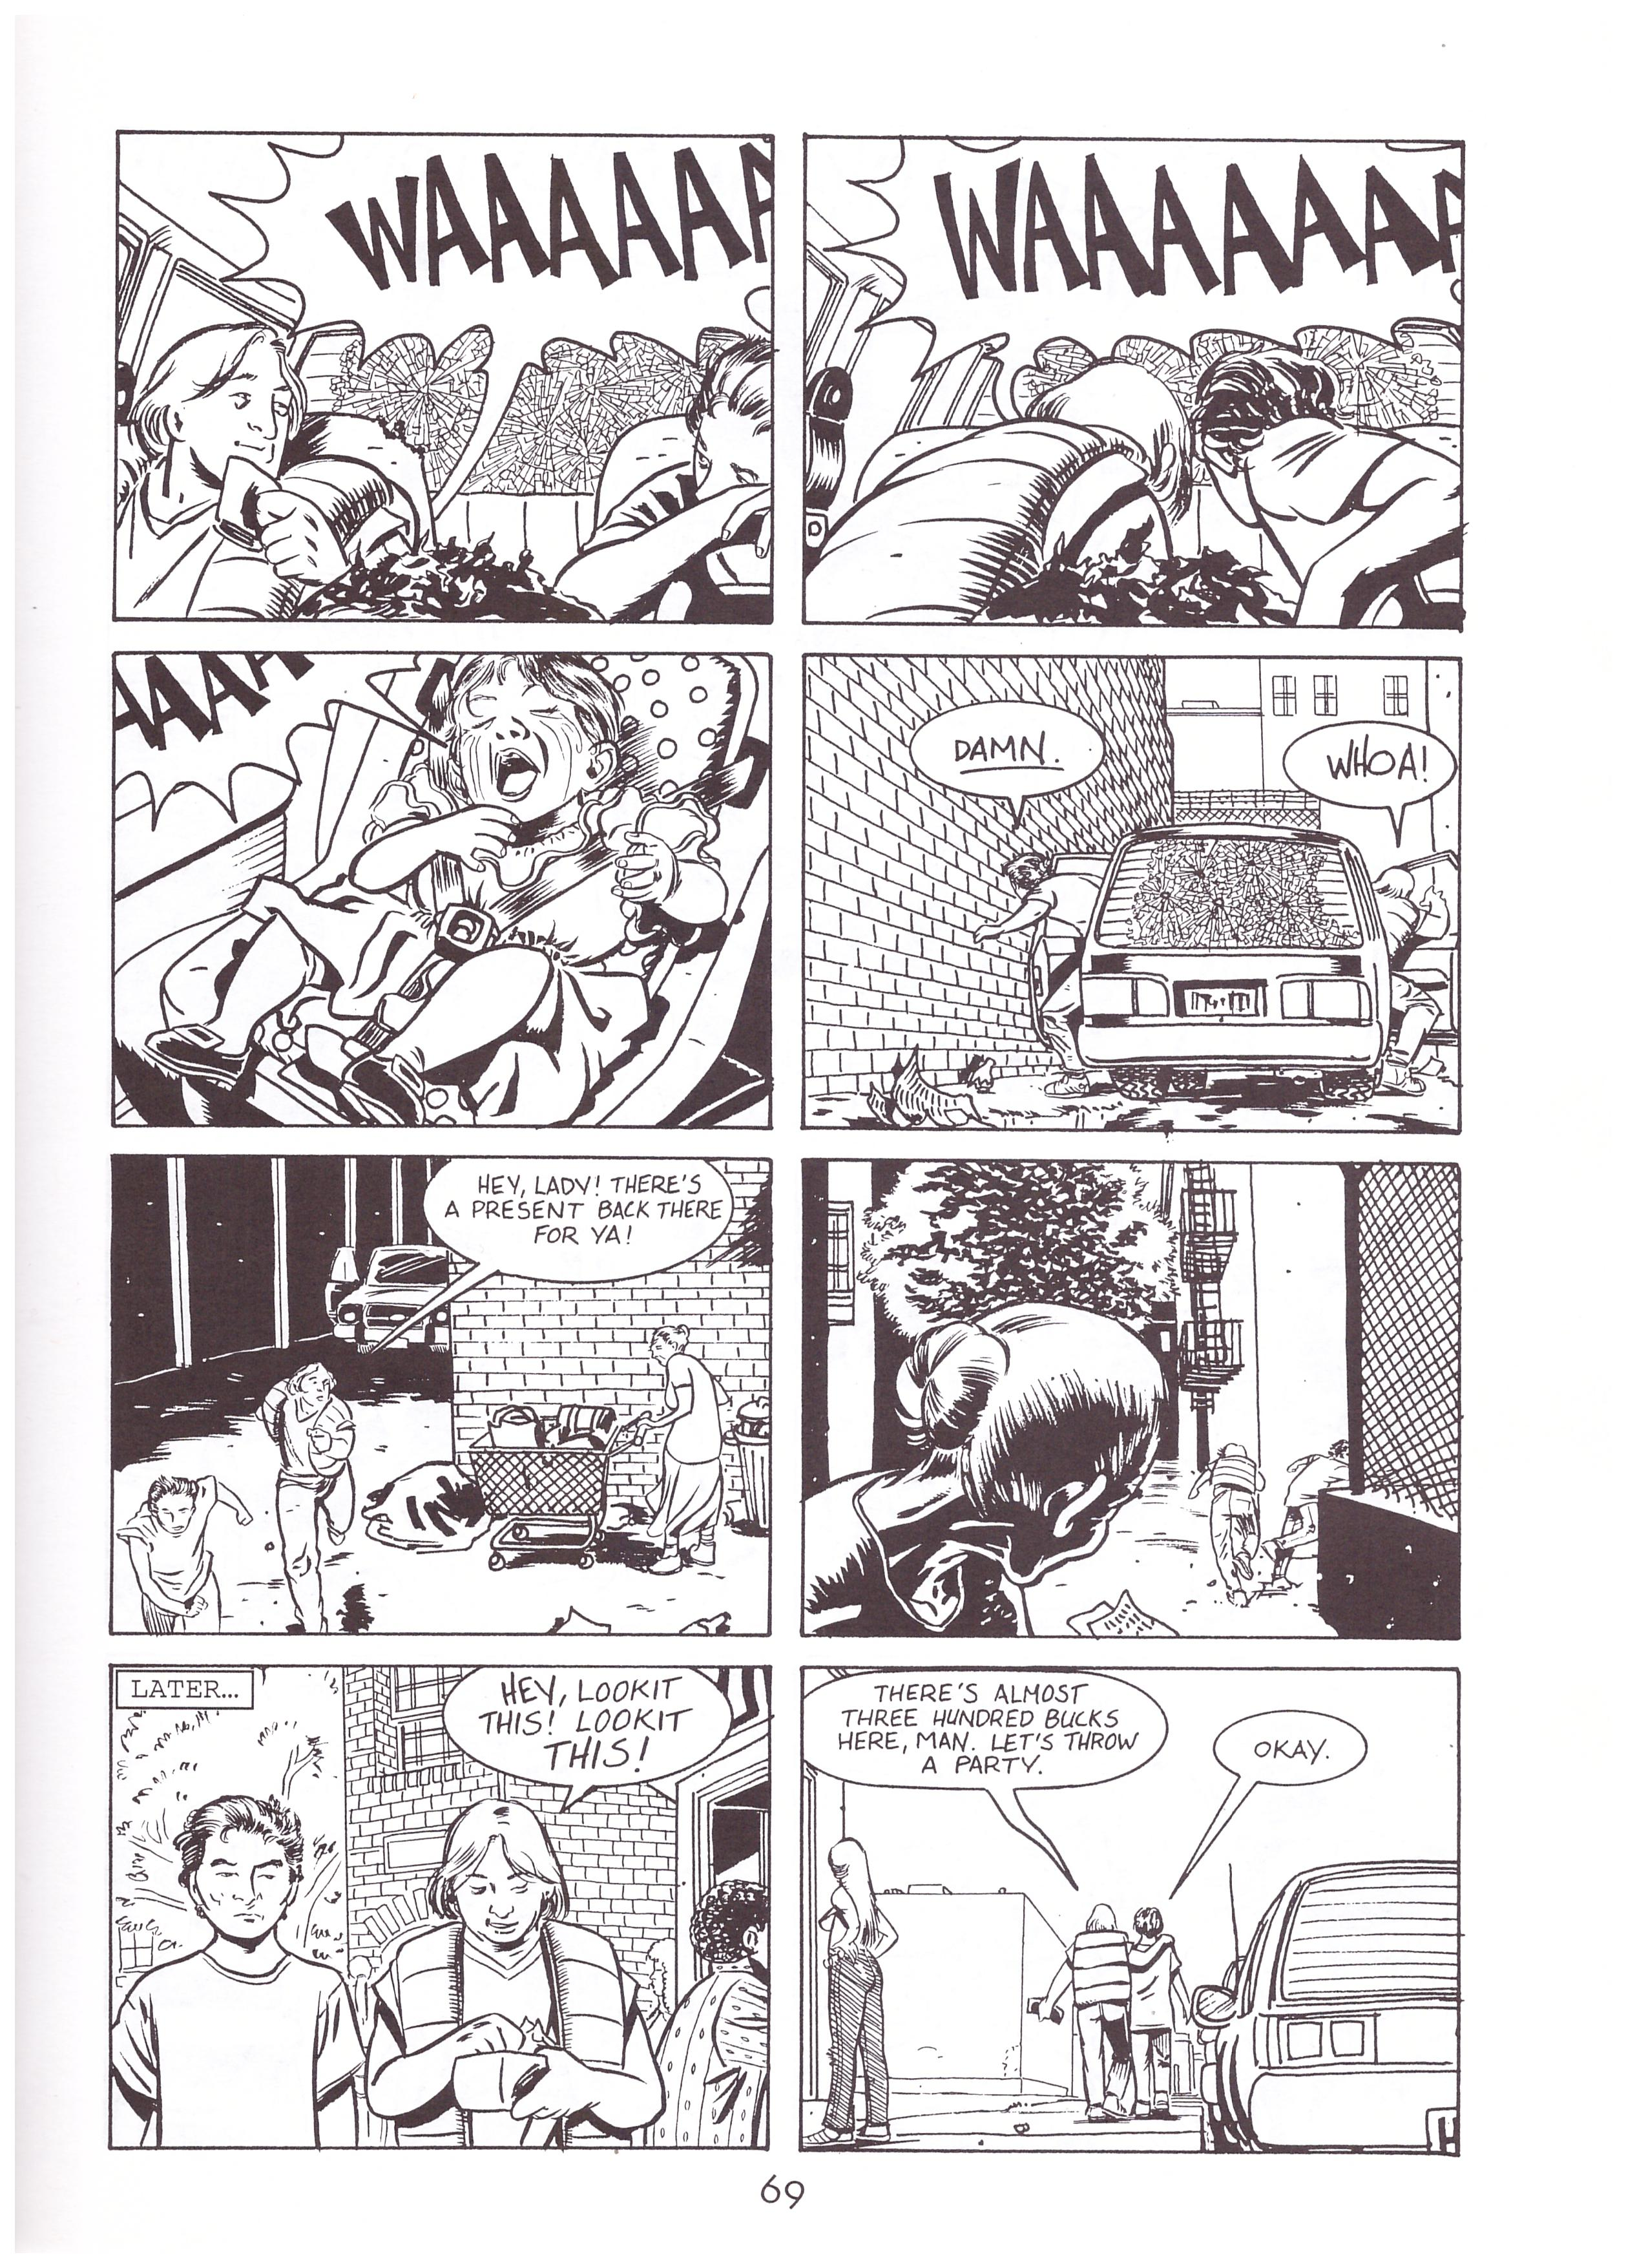 Stray Bullets Innocence of Nihilism review